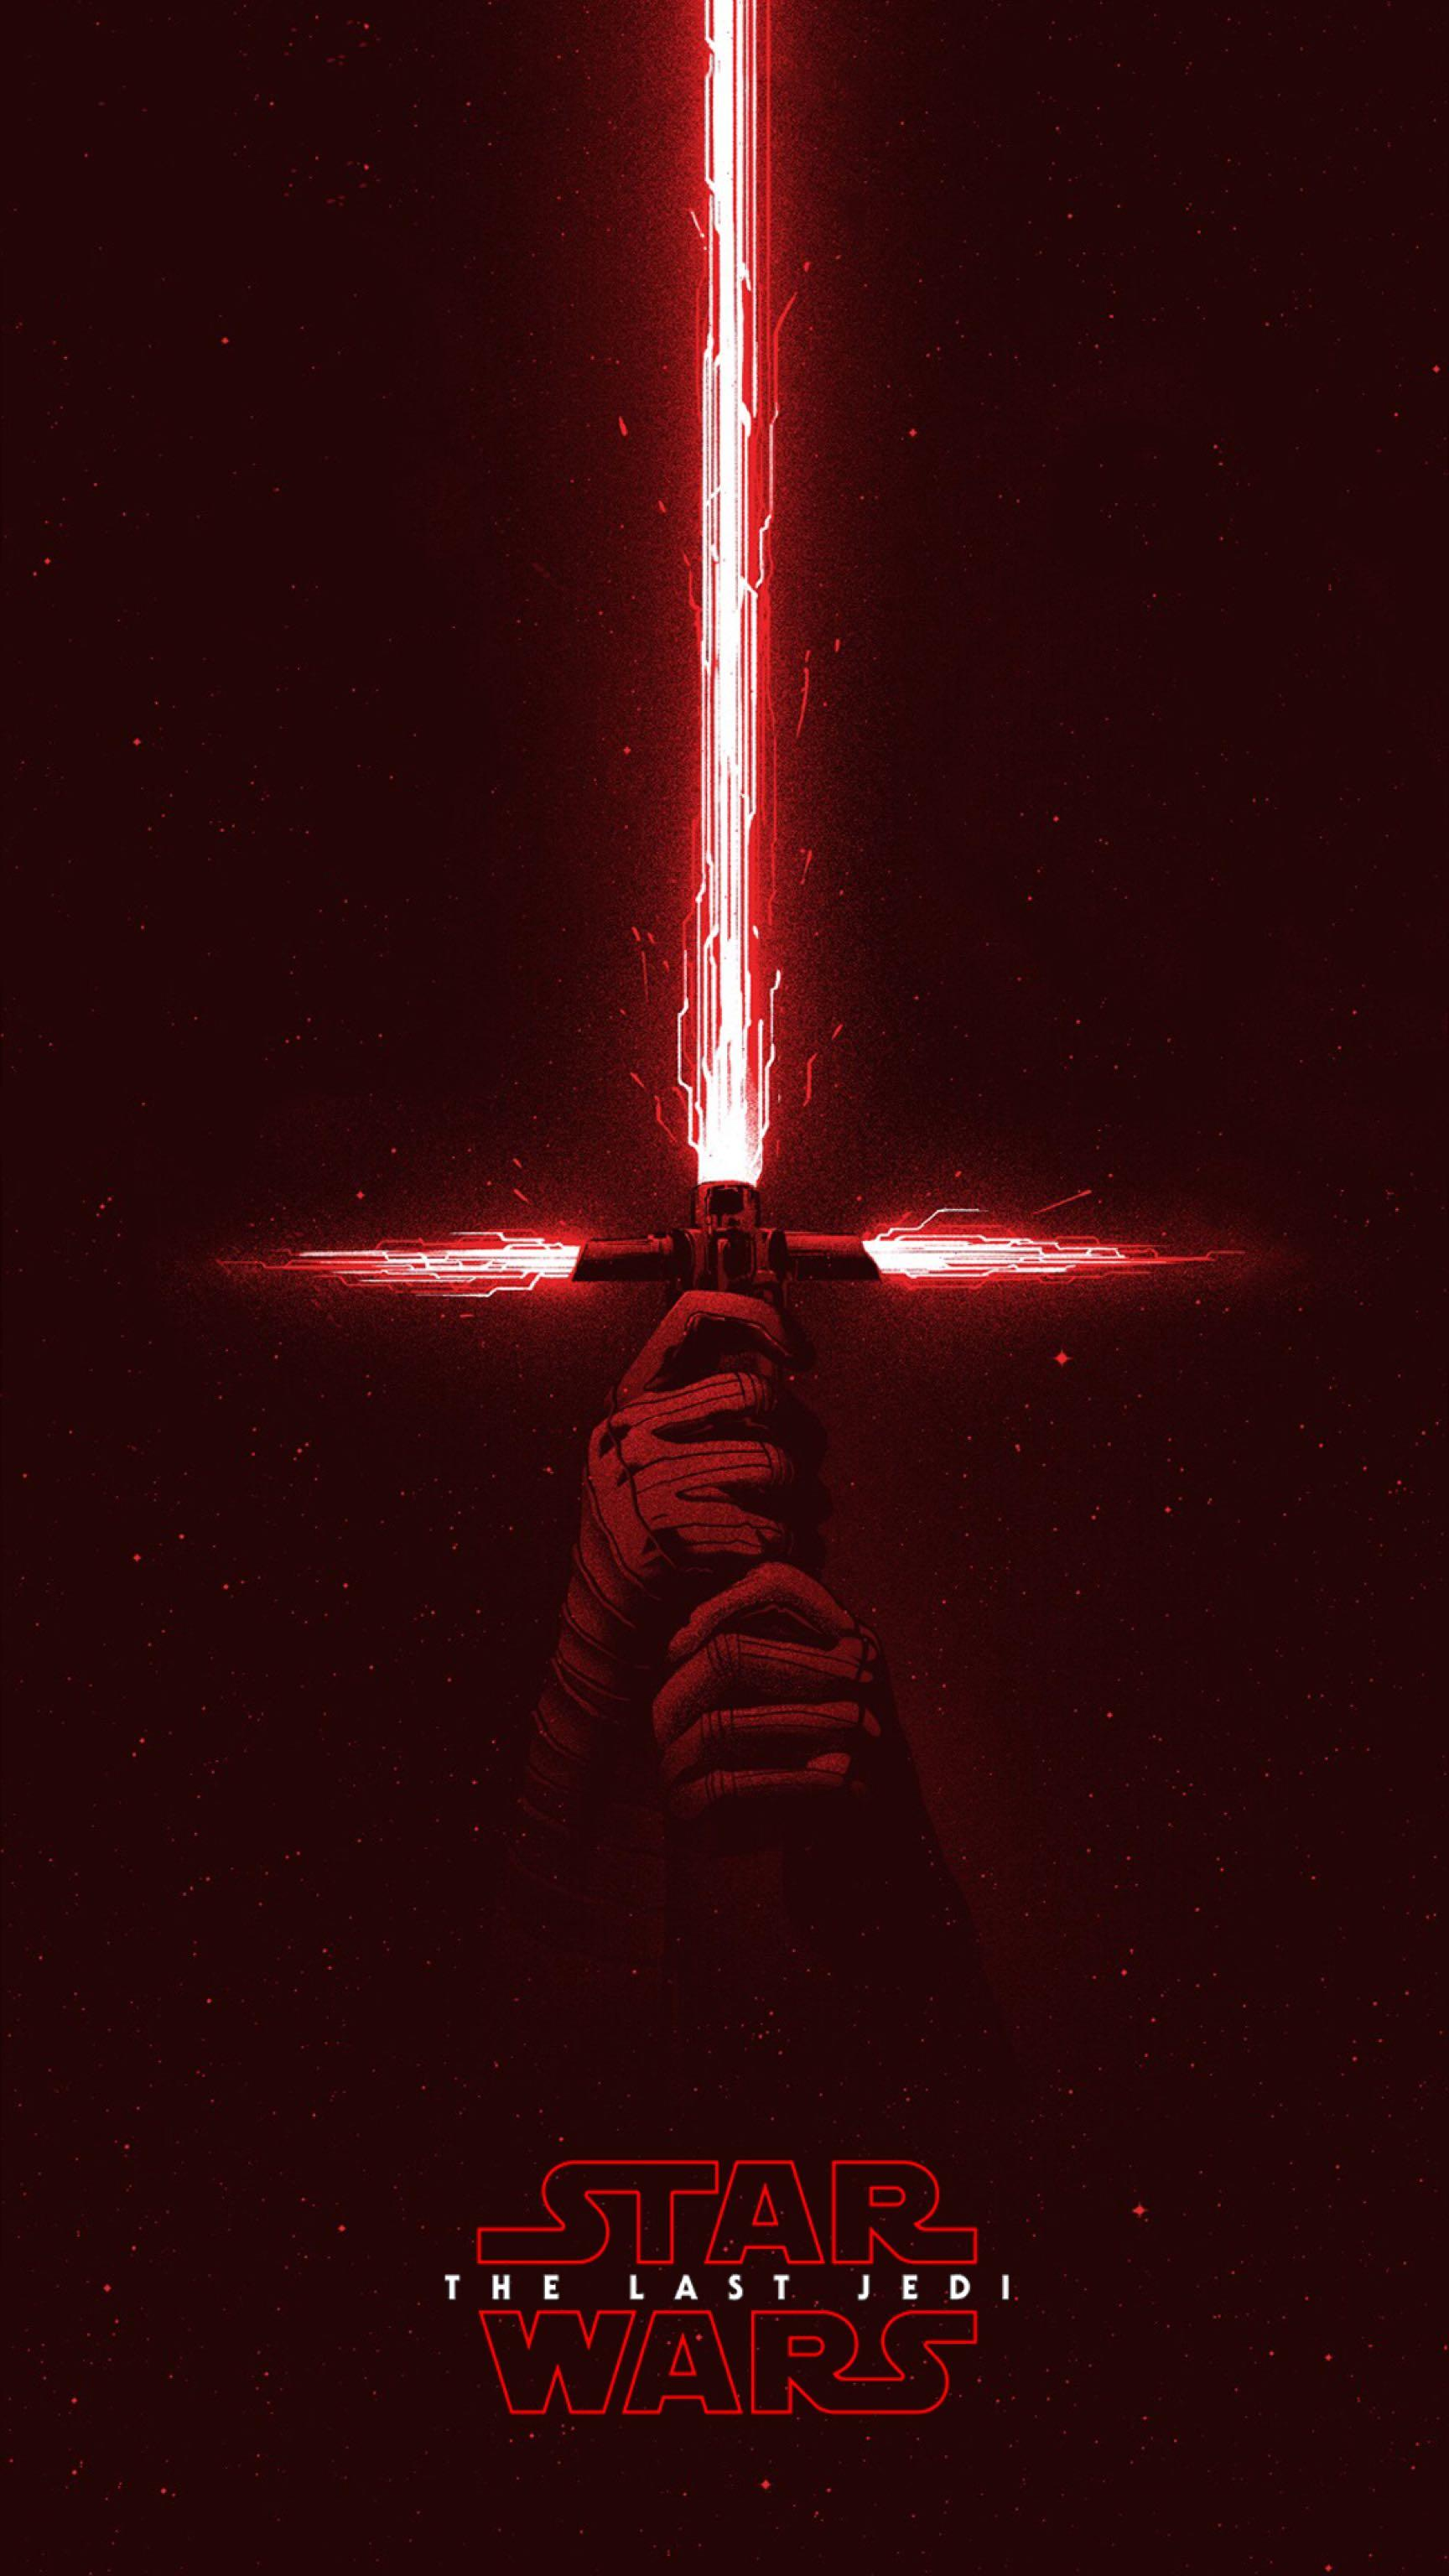 Star Wars The Last Jedi Wallpapers Wallpaper Cave